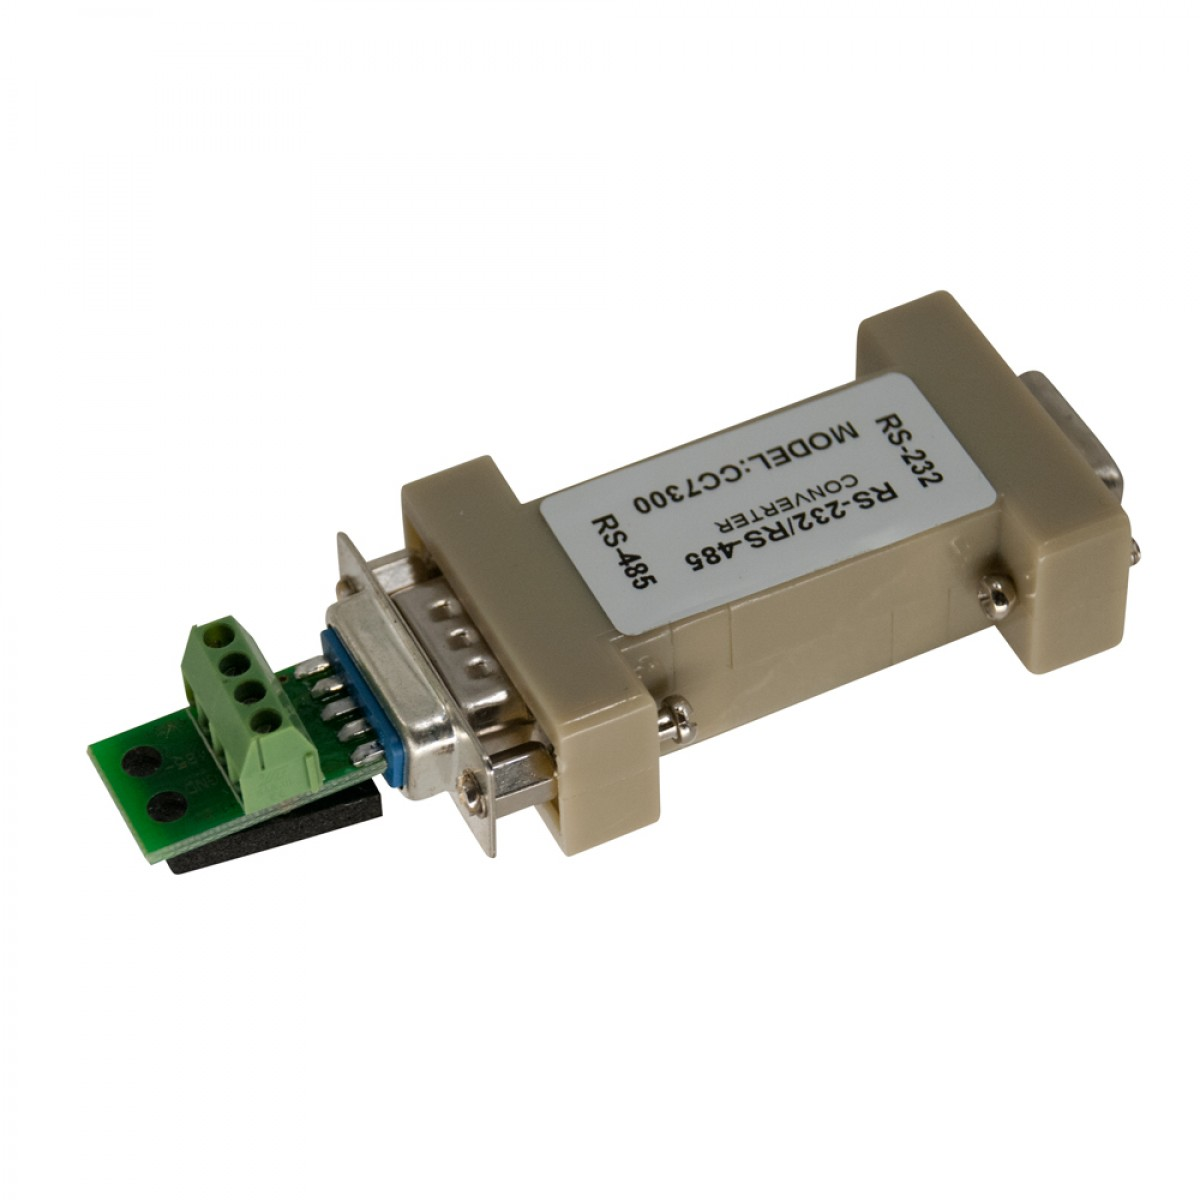 Rs232 To Rs485 Converter Converters Extenders